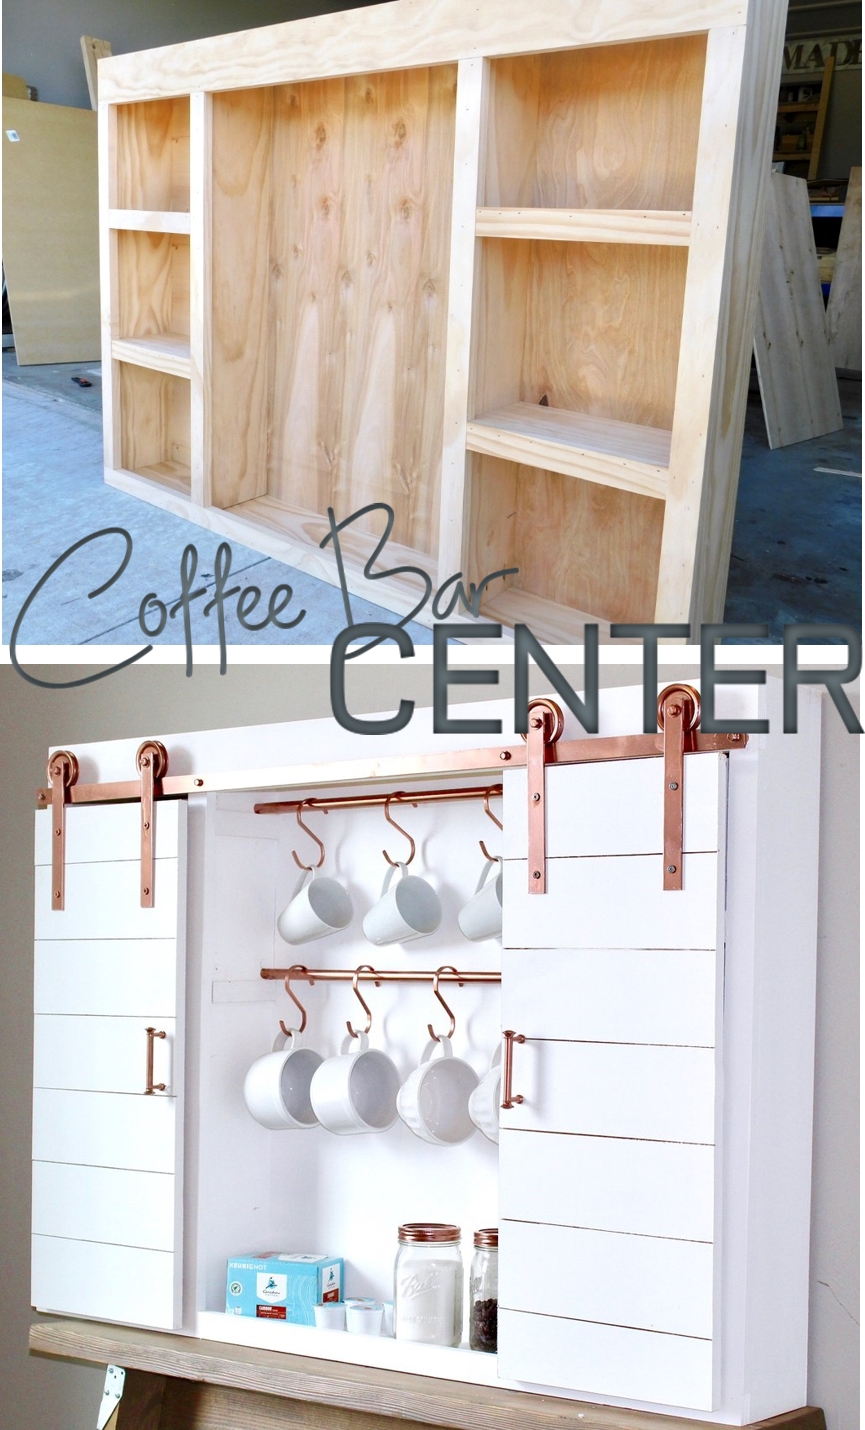 Awe Inspiring Diy Barn Door Coffee Bar Center Woodworking Diy Barn Home Interior And Landscaping Spoatsignezvosmurscom